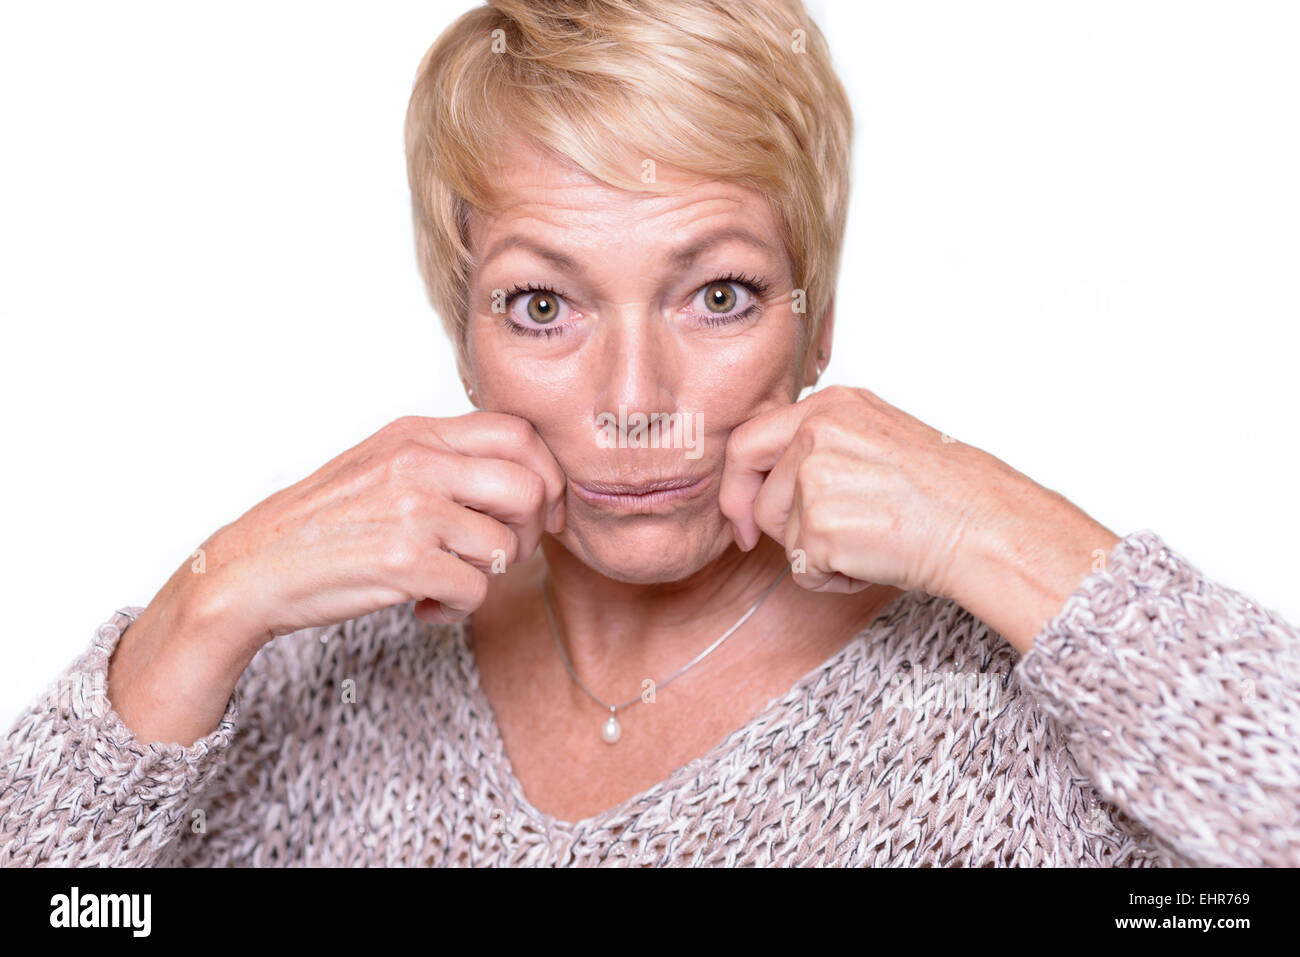 Attractive middle-aged woman with short blond hair trying to reverse the signs of aging by pulling on her cheeks - Stock Image